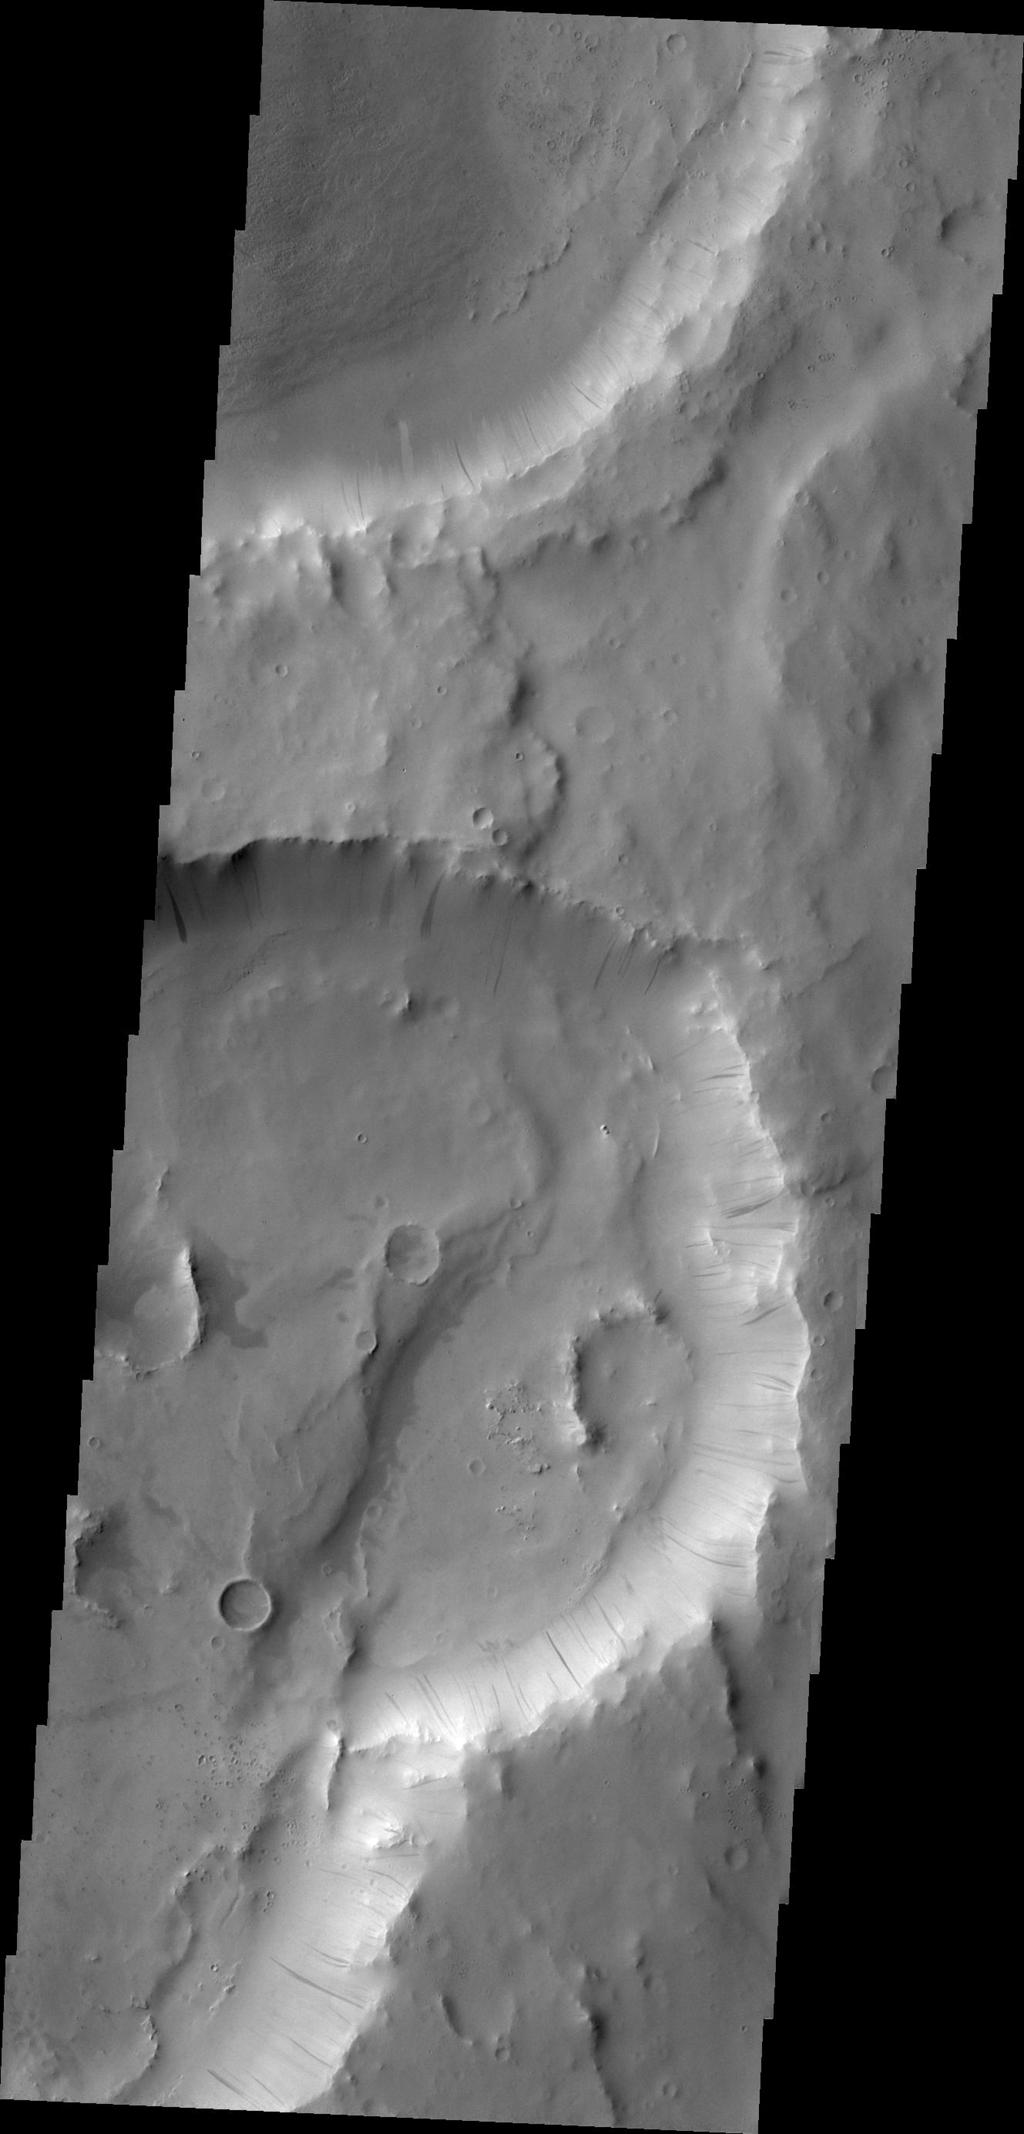 Dark slope streaks are visible on the rim of this crater in Terra Sabaea in this image captured by NASA's 2001 Mars Odyssey.